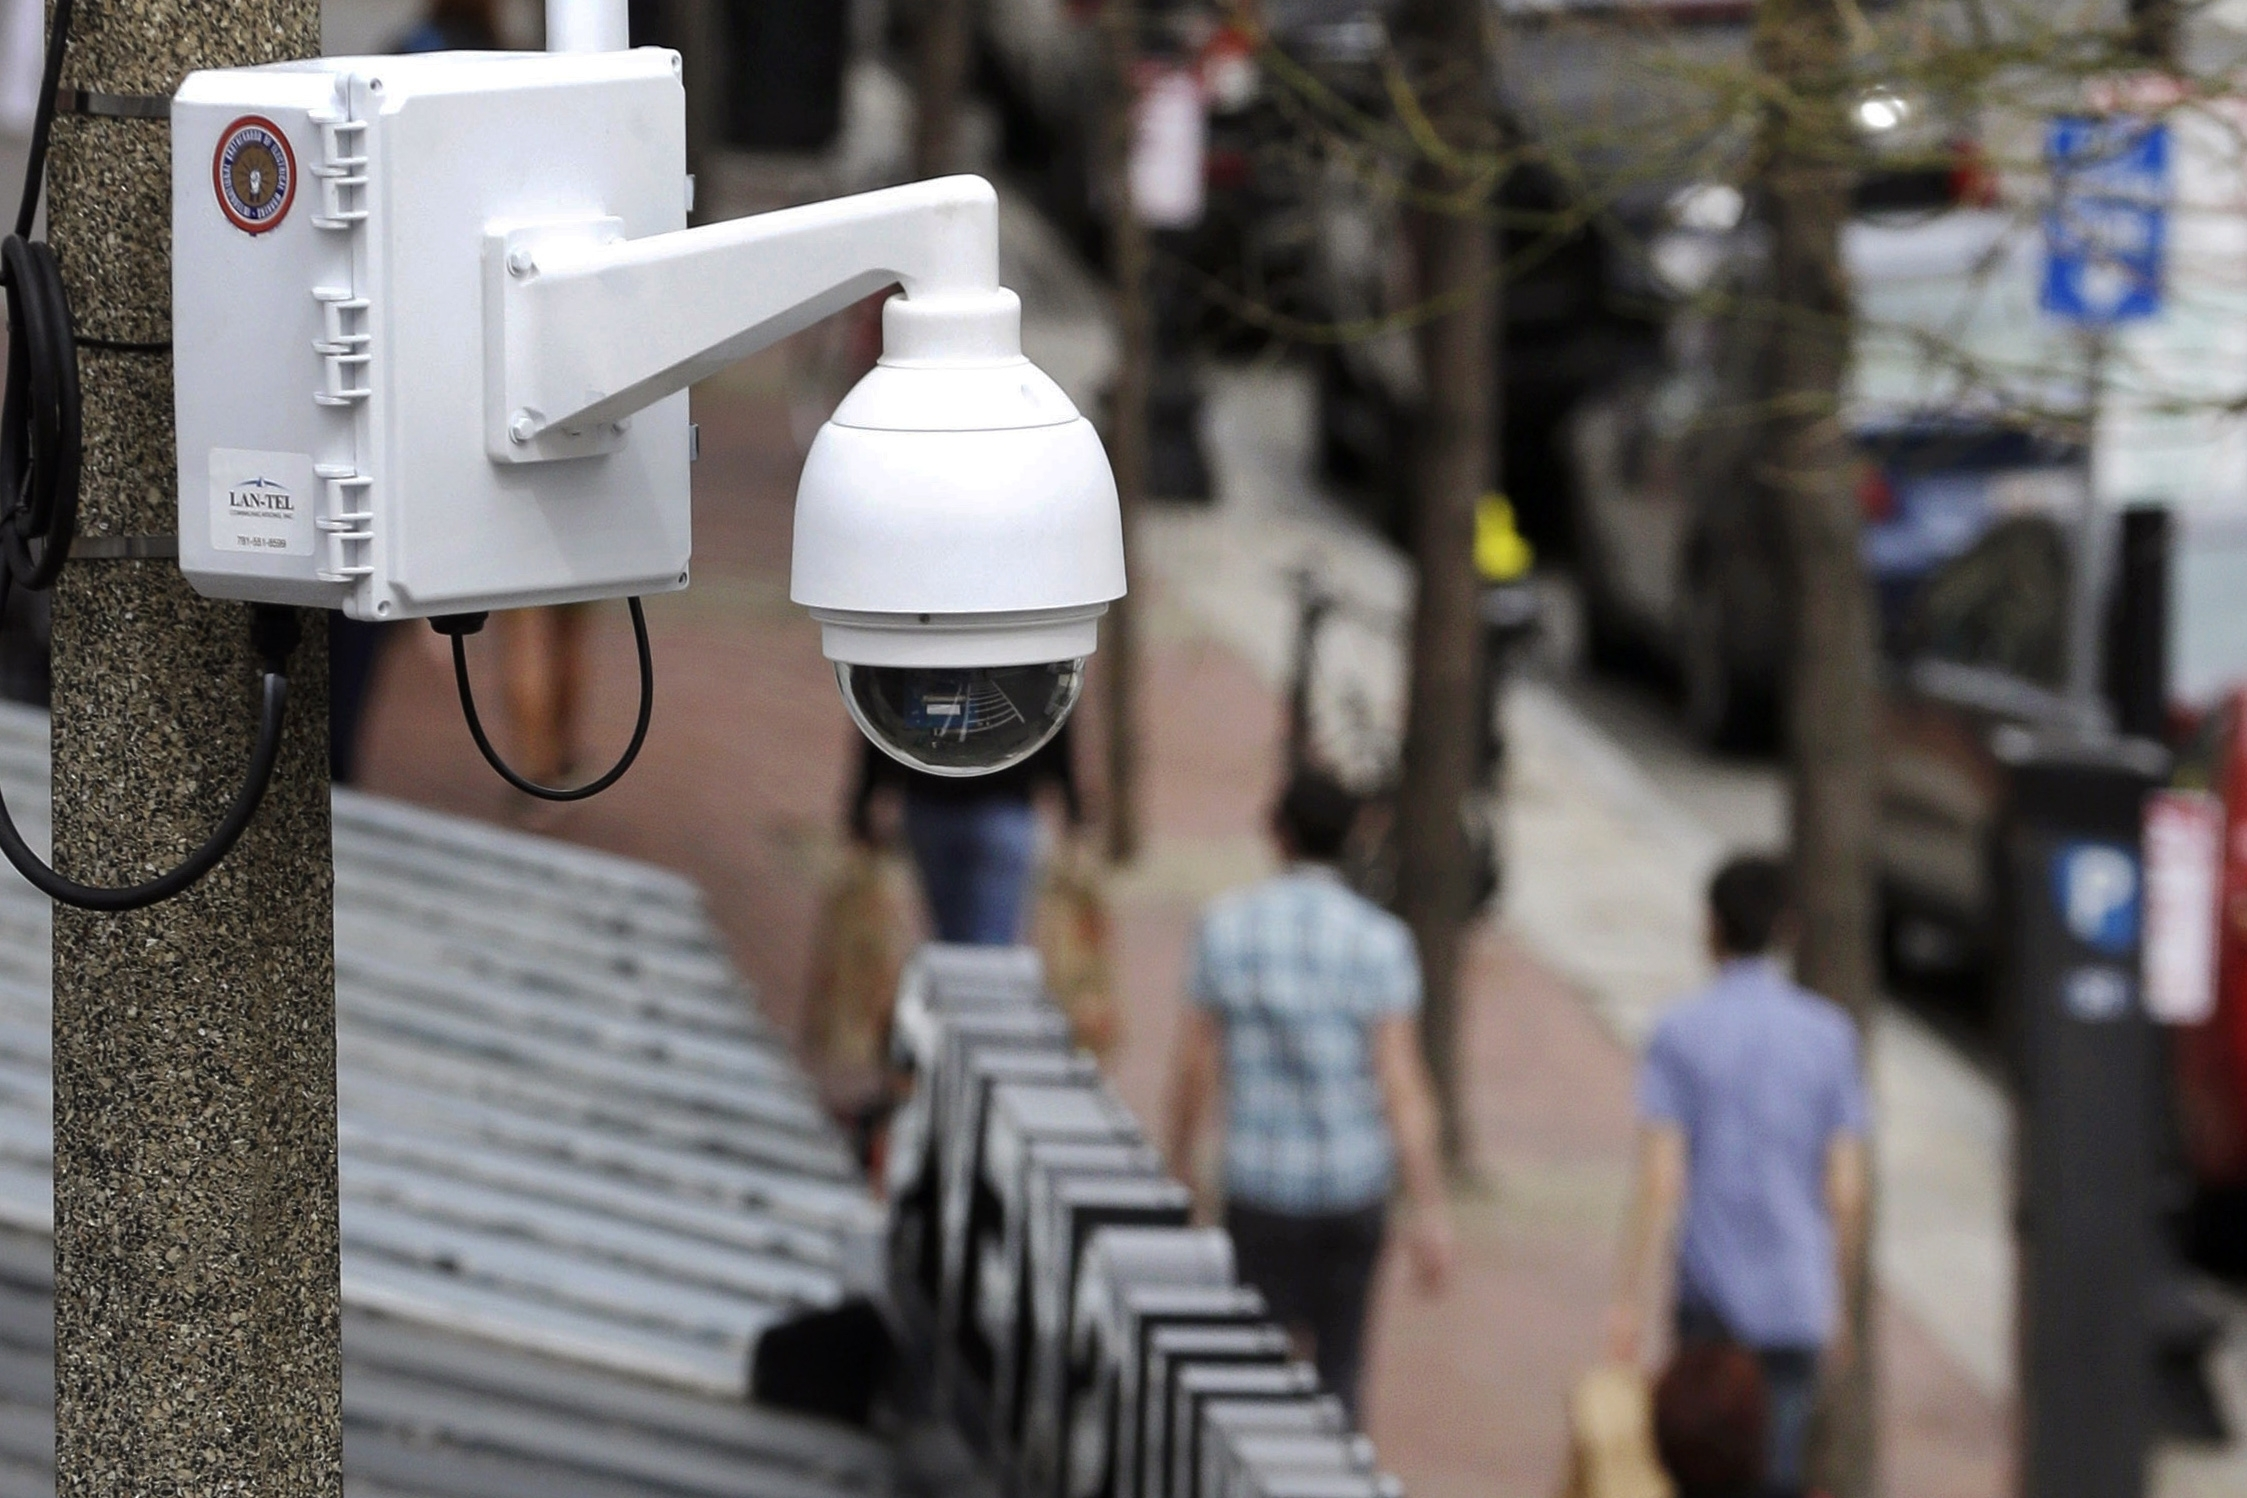 In this April 14, 2014 photo, a surveillance camera is attached to a light pole along Boylston Street in Boston. The Boston City Council voted unanimously, Wednesday, June 24, 2020, to pass a ban on the use of facial recognition technology.